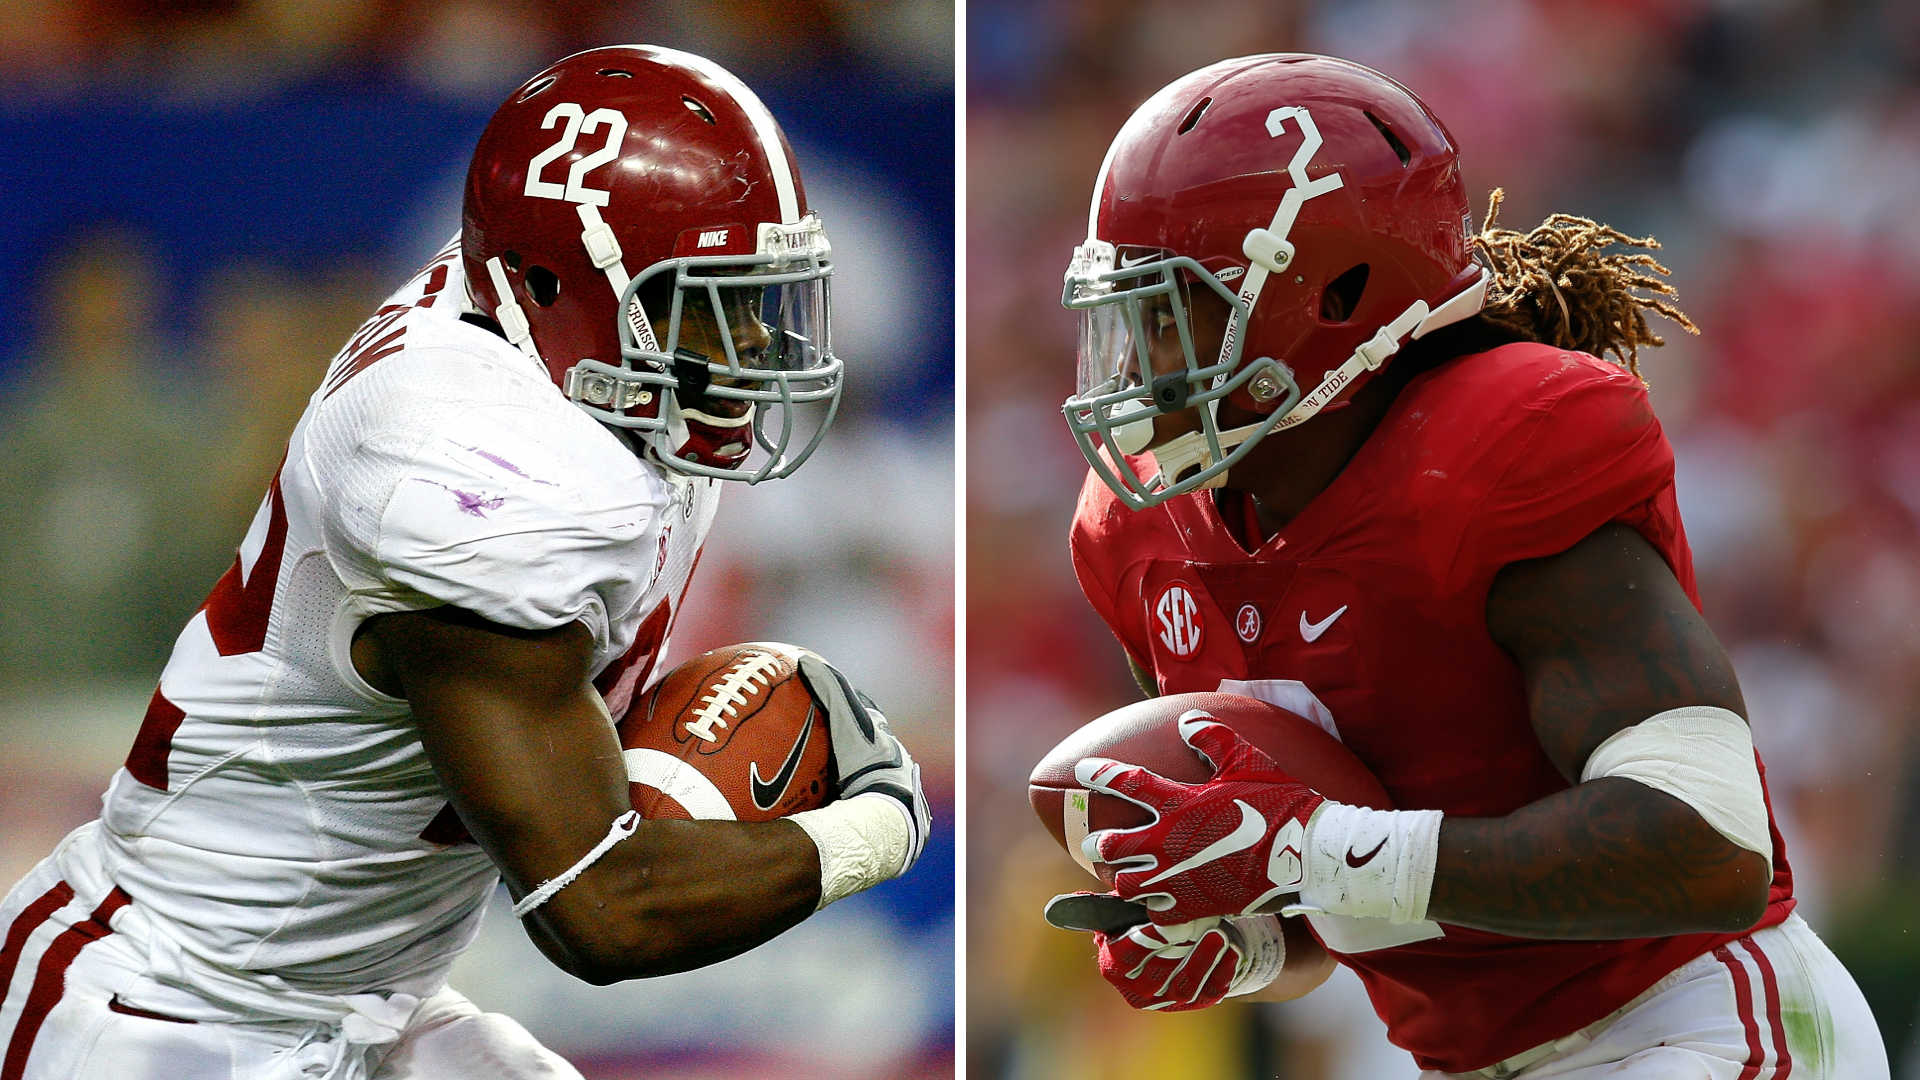 Alabama To Erect Statues For Heisman Winners Mark Ingram